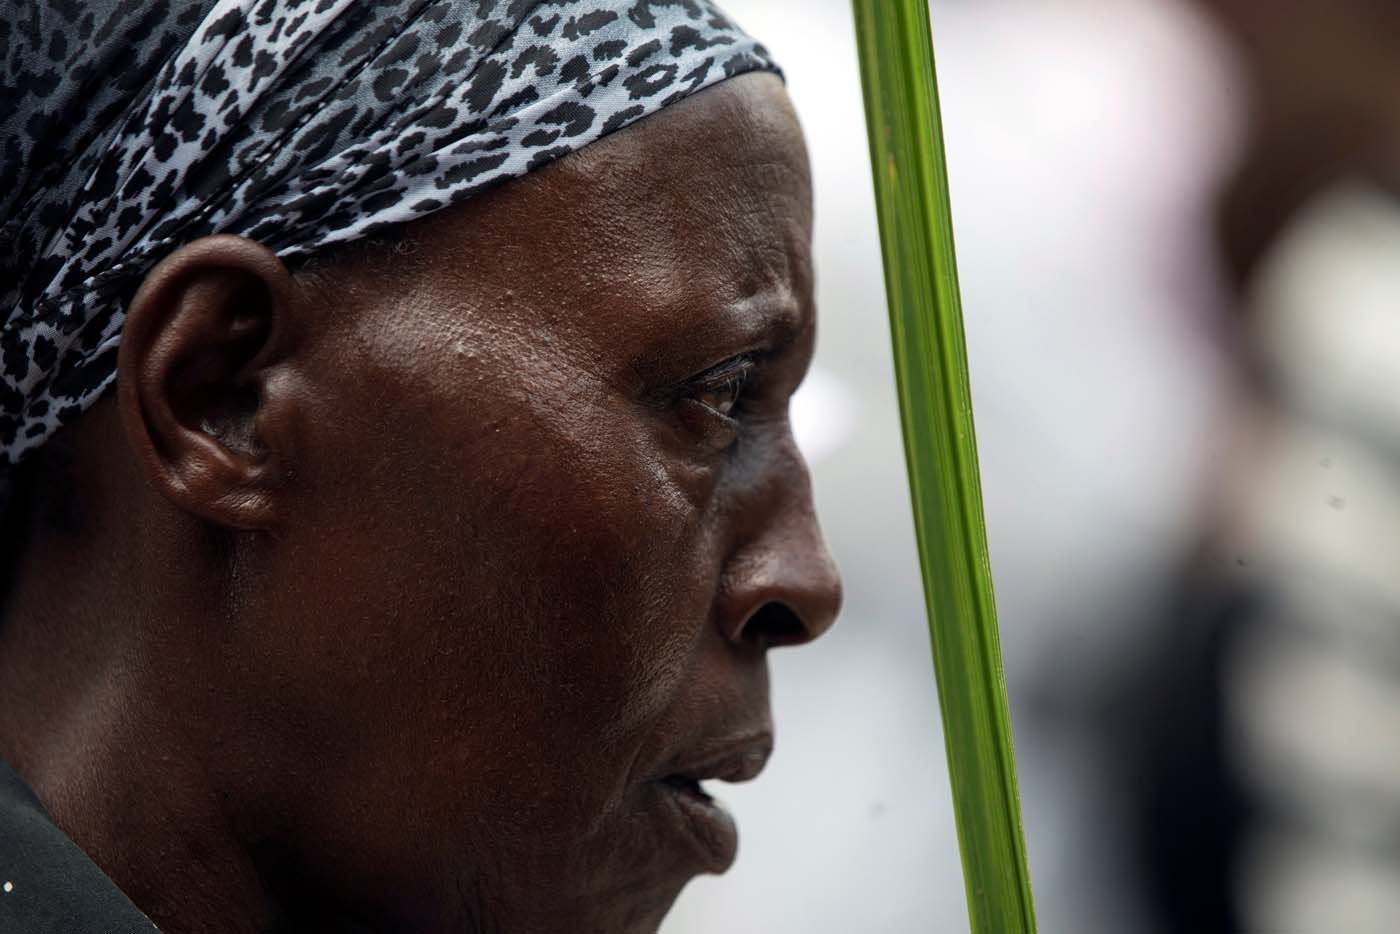 A Catholic Christian worshipper holds a palm frond as she takes part in a Palm Sunday ceremony in Nairobi, Kenya April 9, 2017. REUTERS/Baz Ratner.